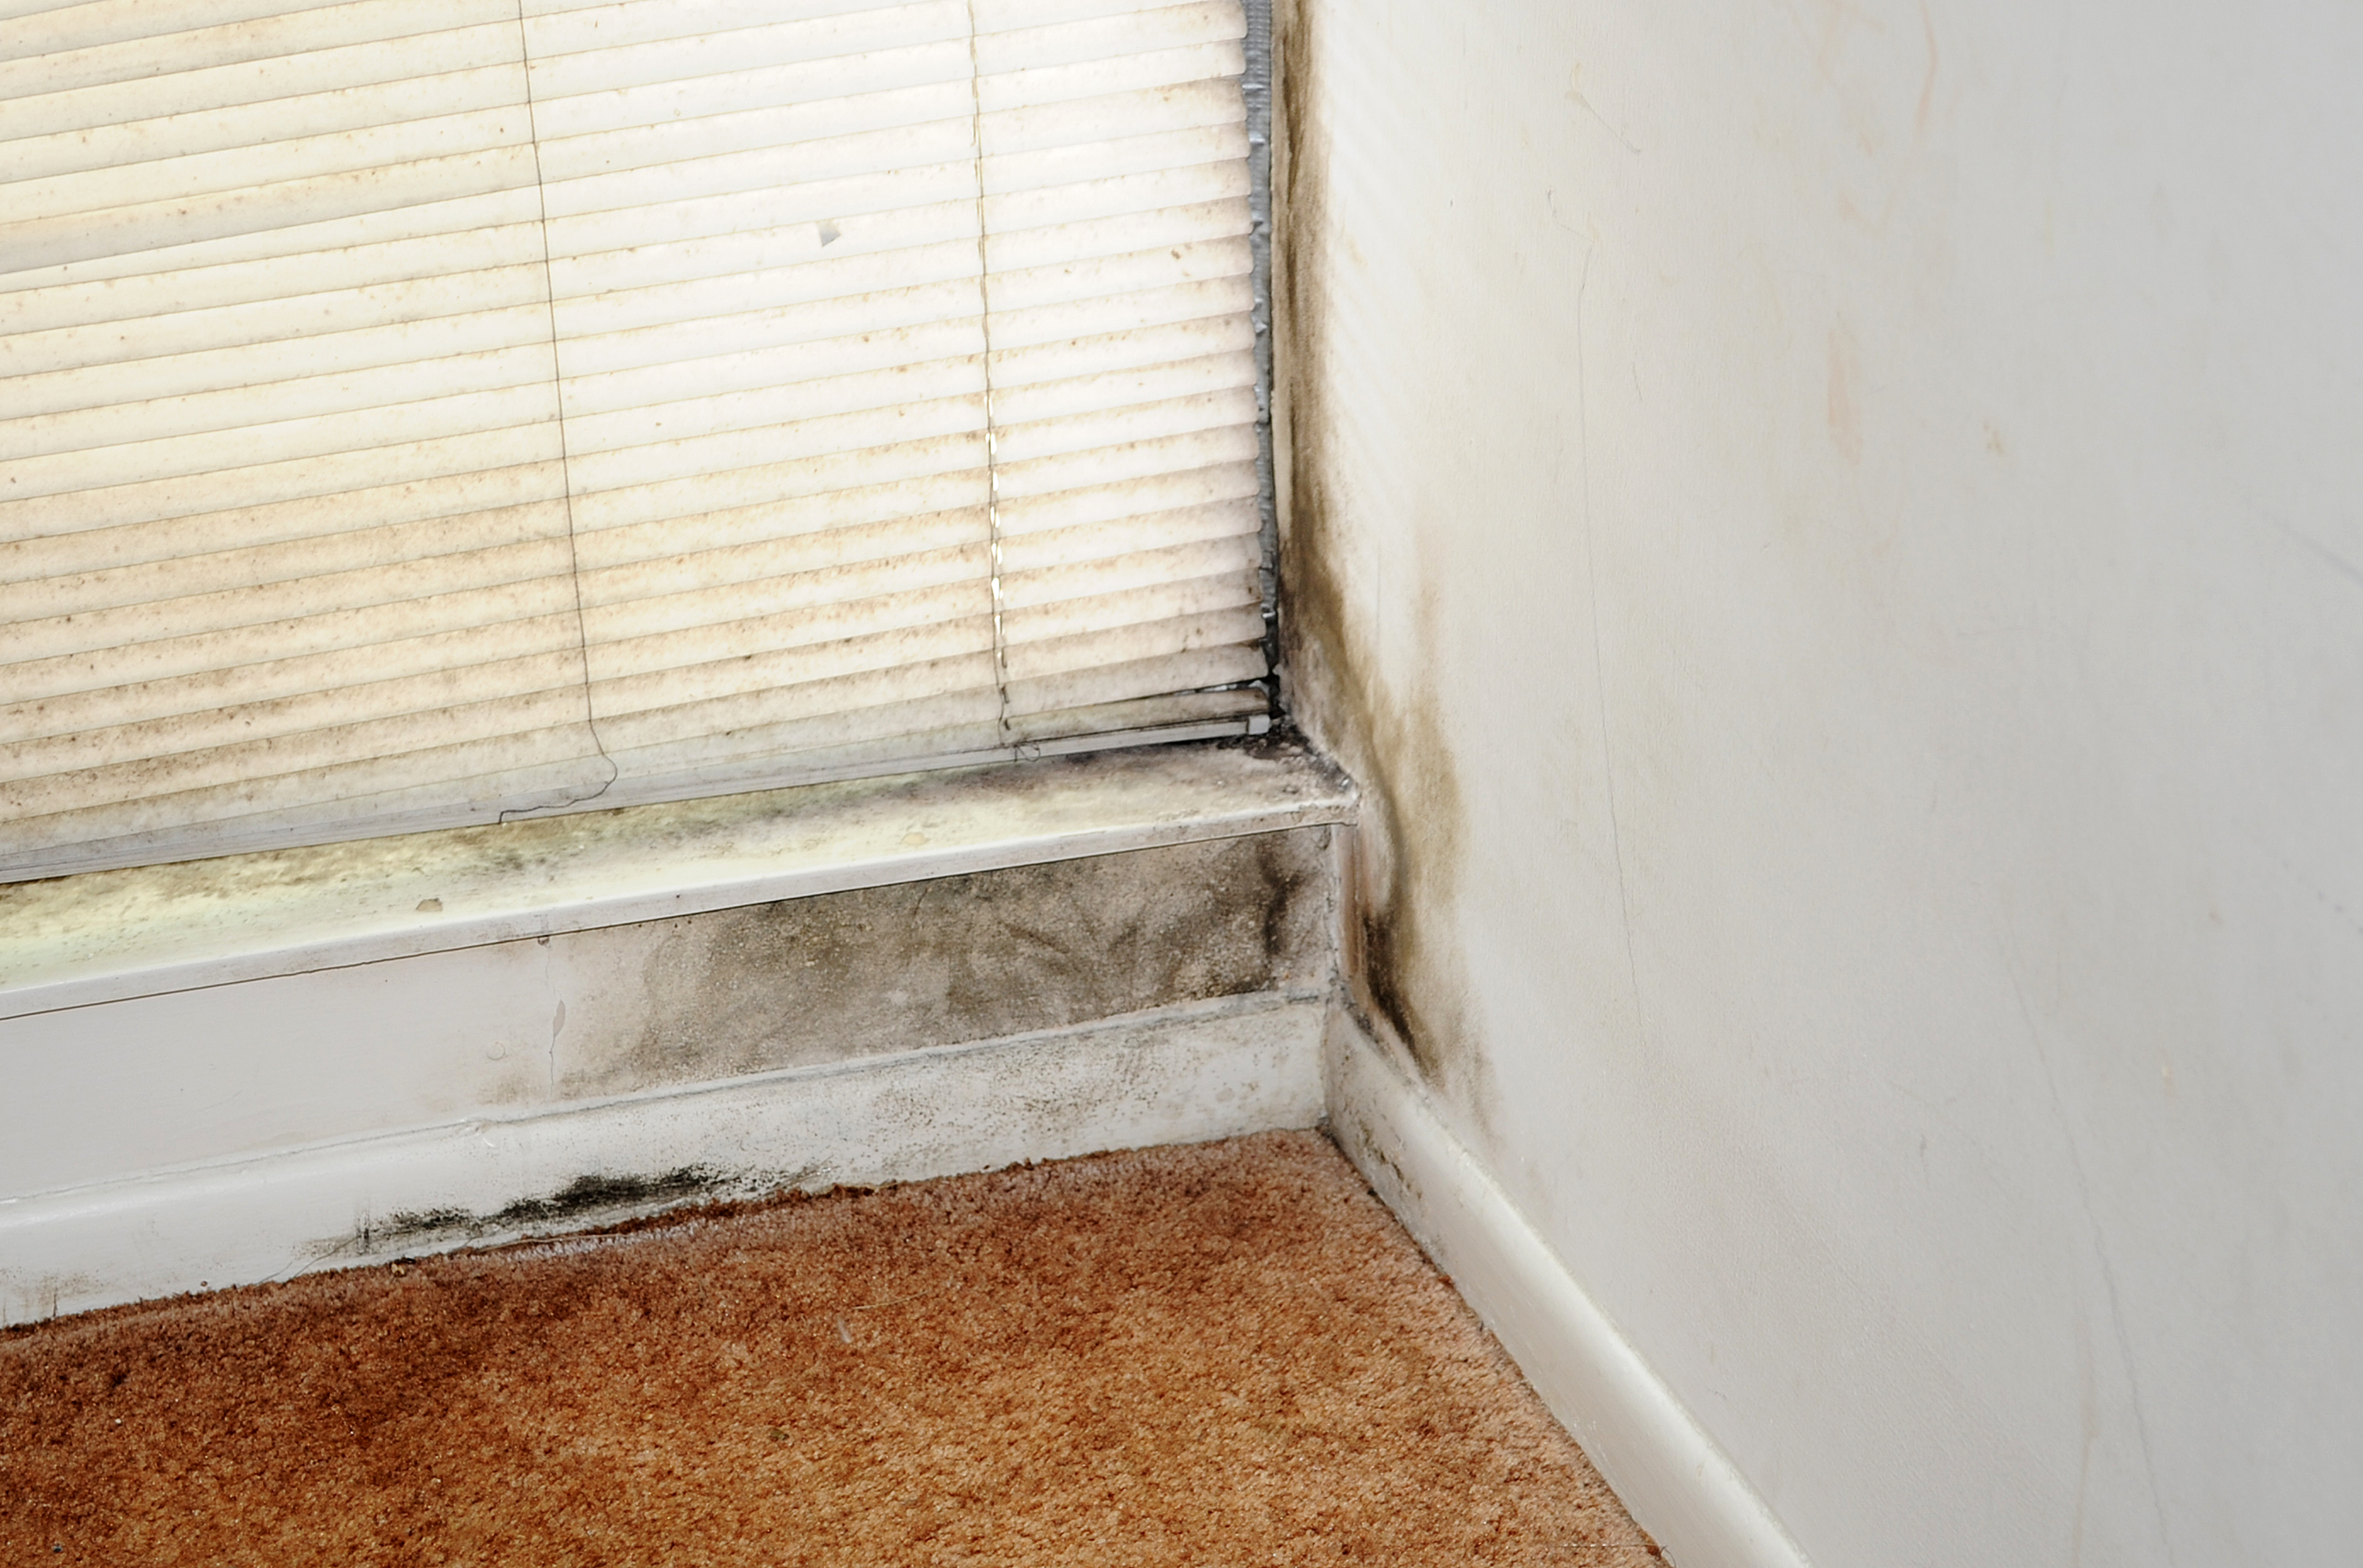 Is Mold Harmful Or Not